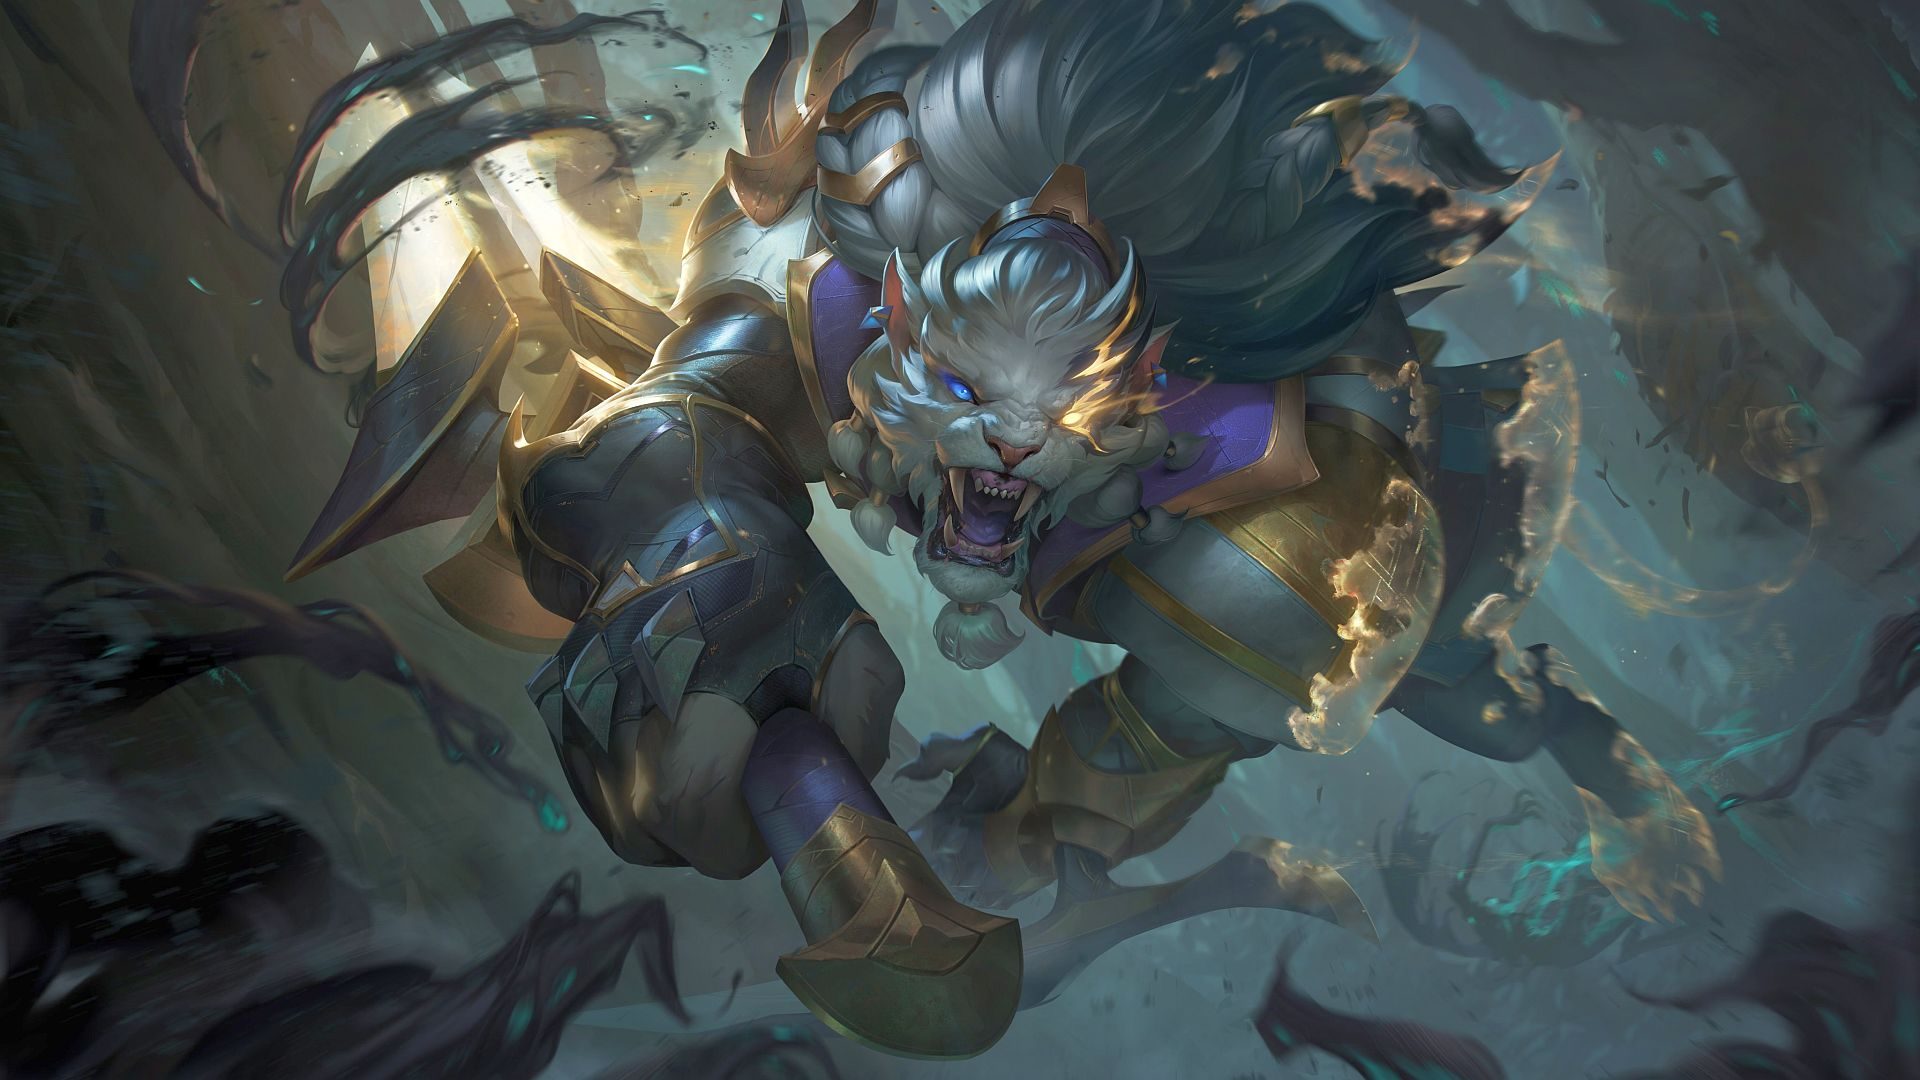 League of Legends: Sentinels of Light brings missions and a brand-new mode